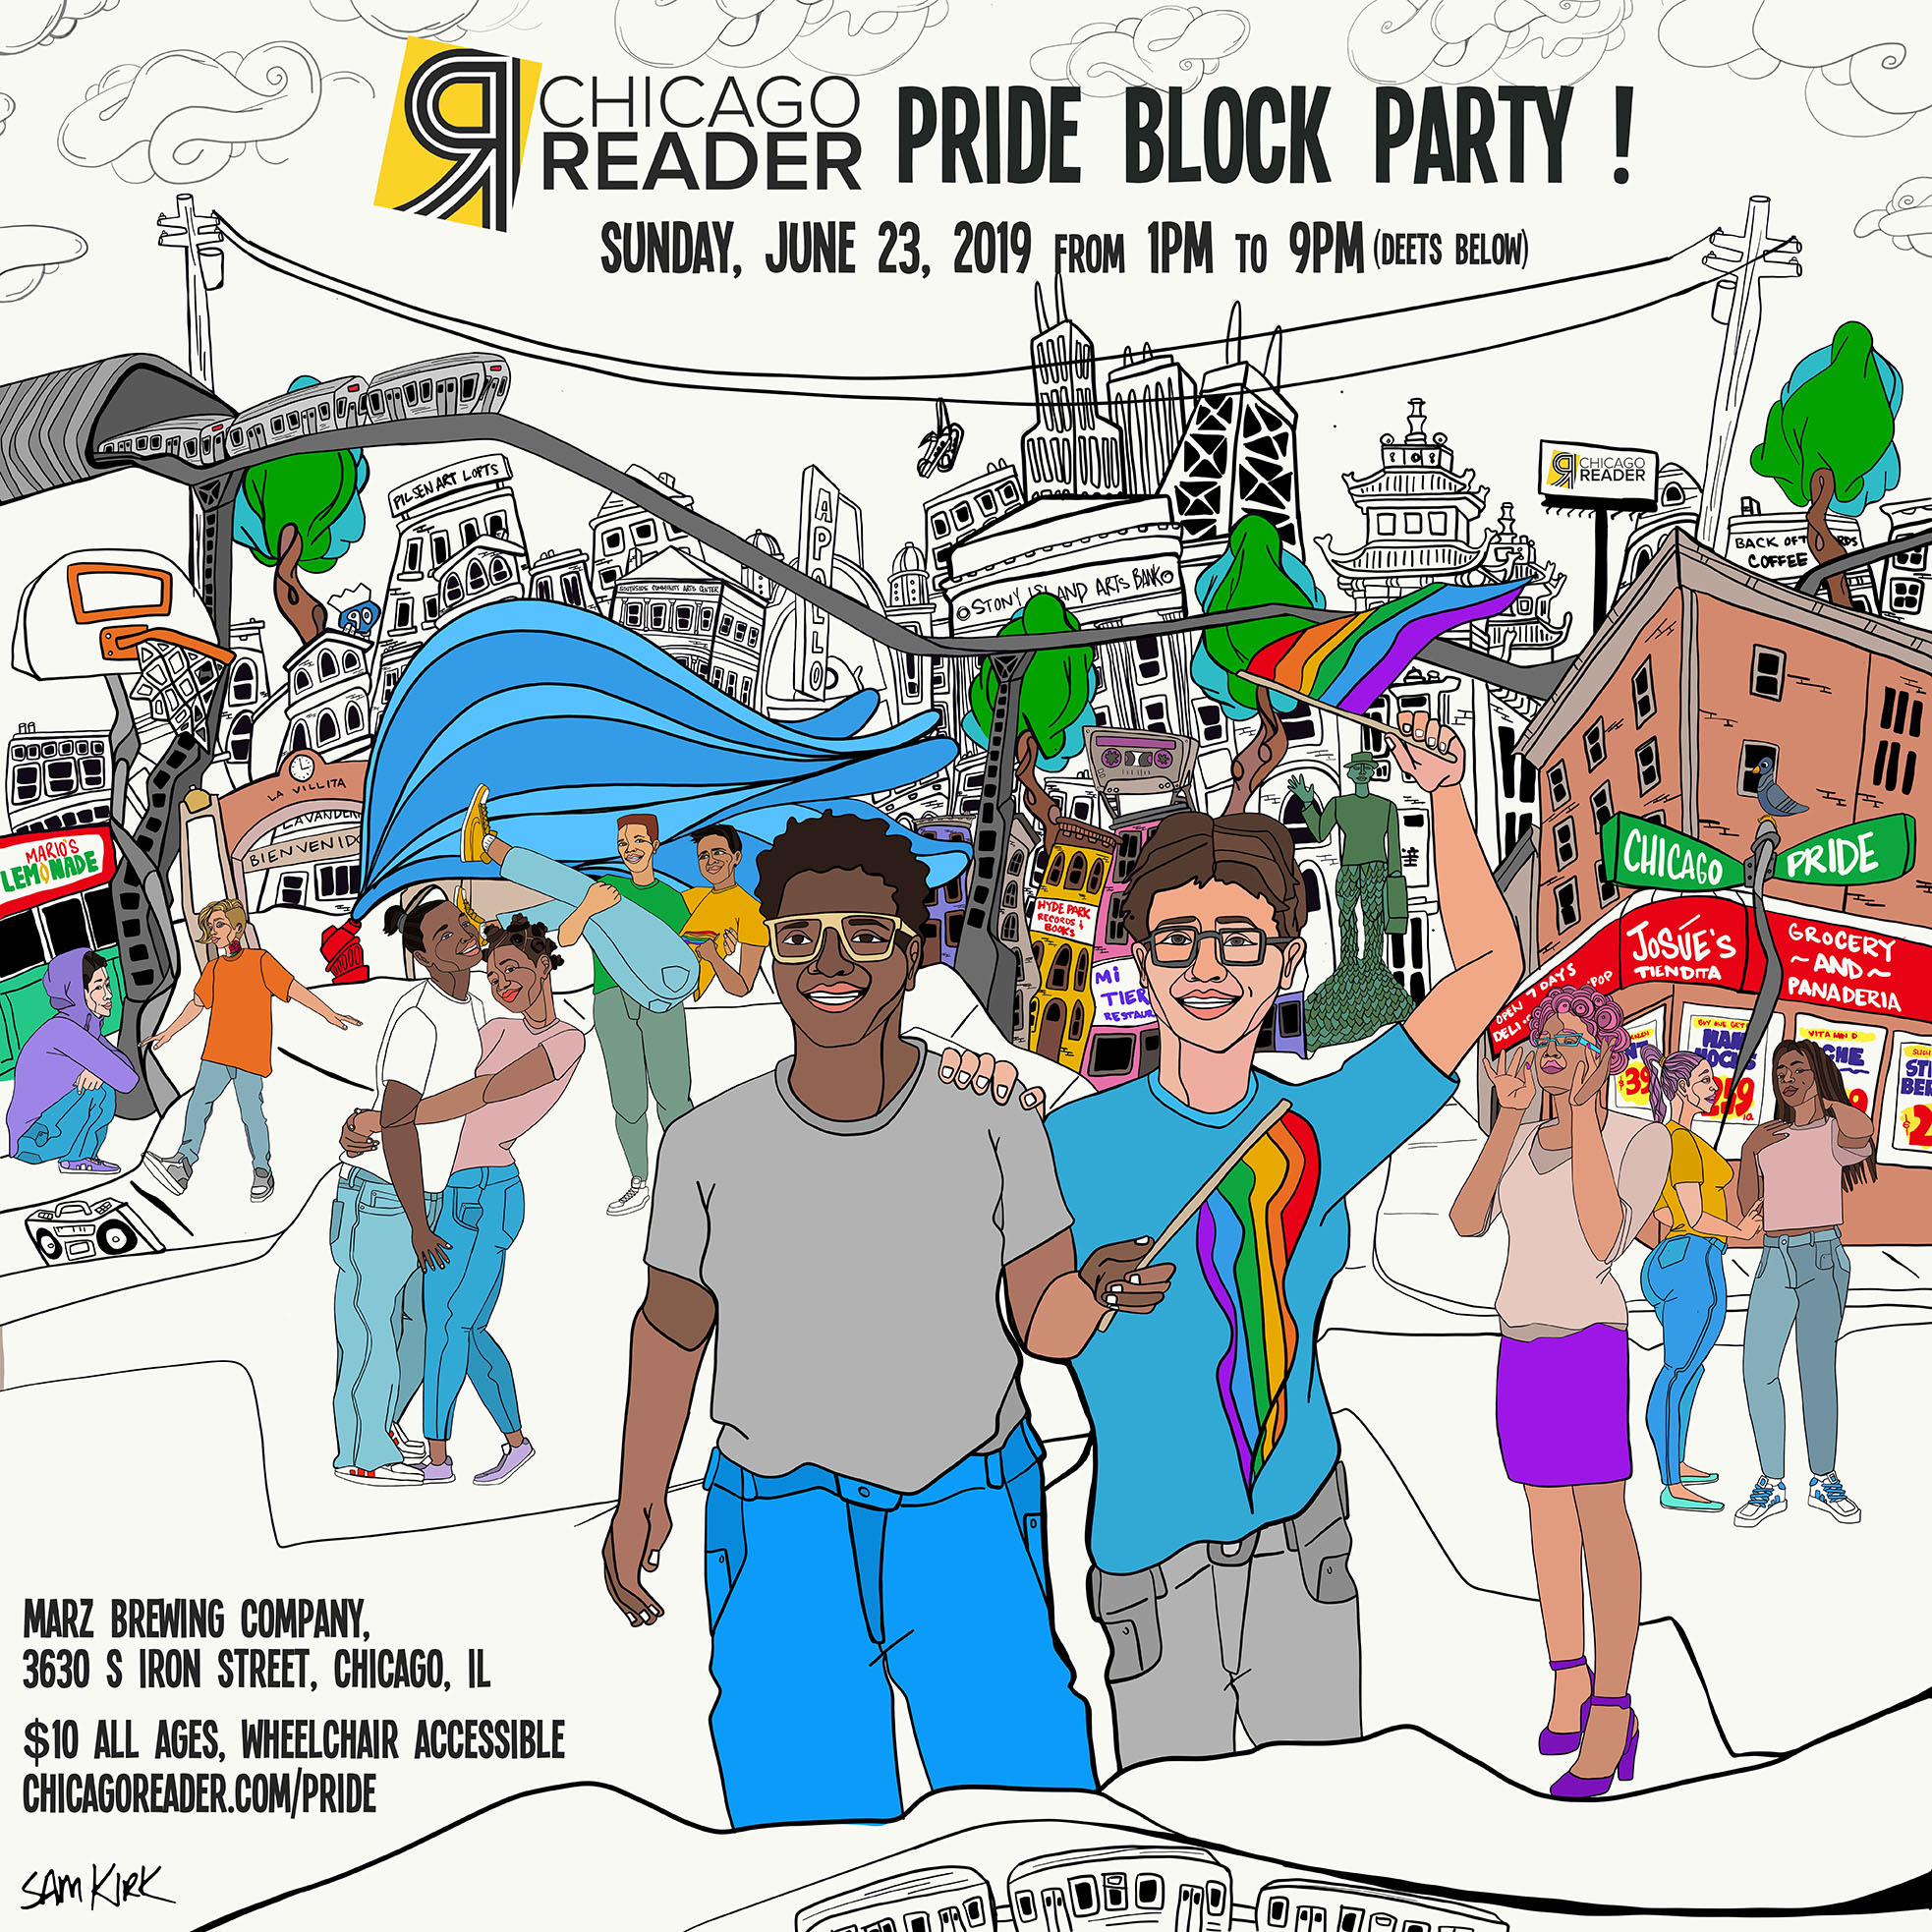 CHICAGO READER X MARZ BREWERY - June 2019Custom Artwork for Chicago Reader and Marz Community BrewerySam was invited by the Chicago Reader to design the graphic for their inaugural Pride Block Party on Chicago South Side. The artwork would also be printed on a limited edition GAY IPA… (Learn More)